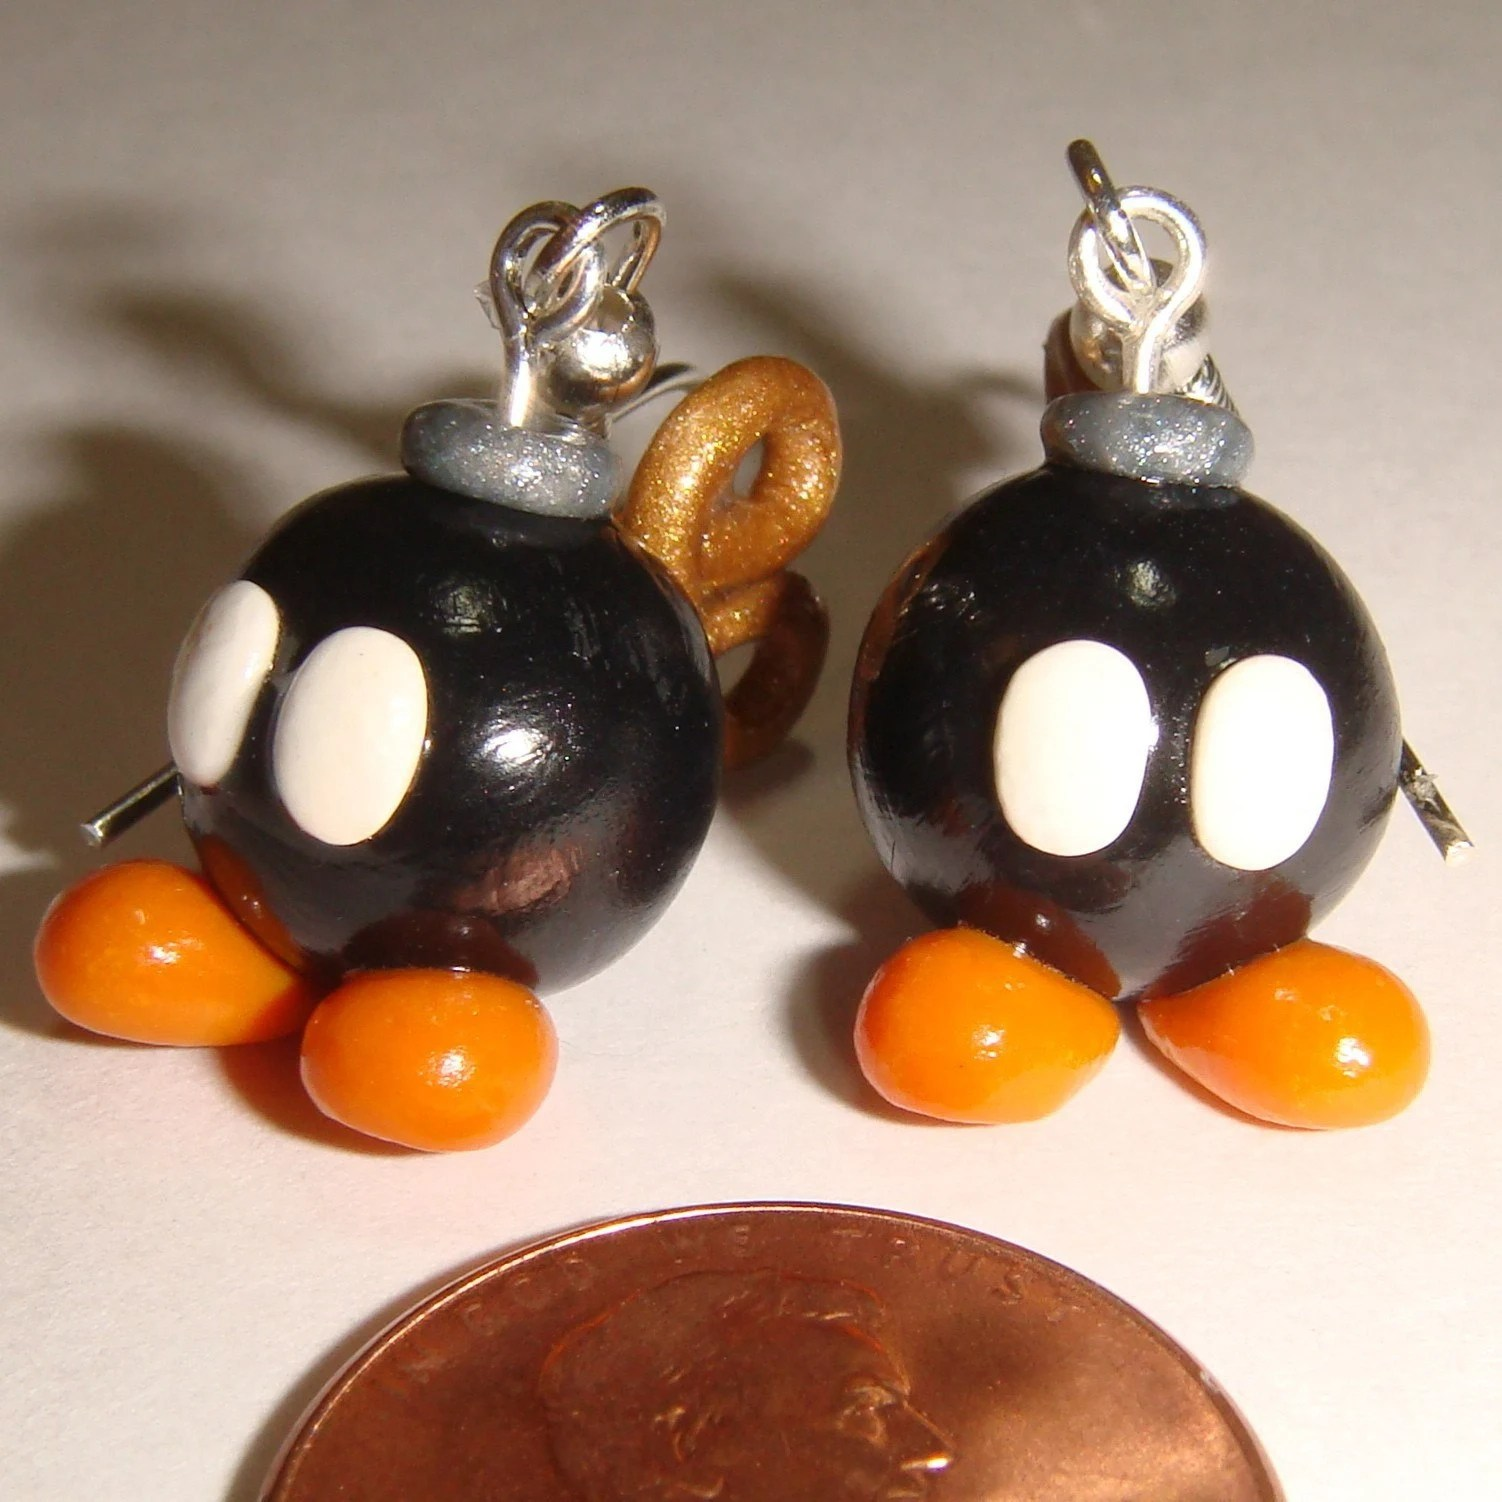 Super Mario Brothers Bob-omb bomb Earrings